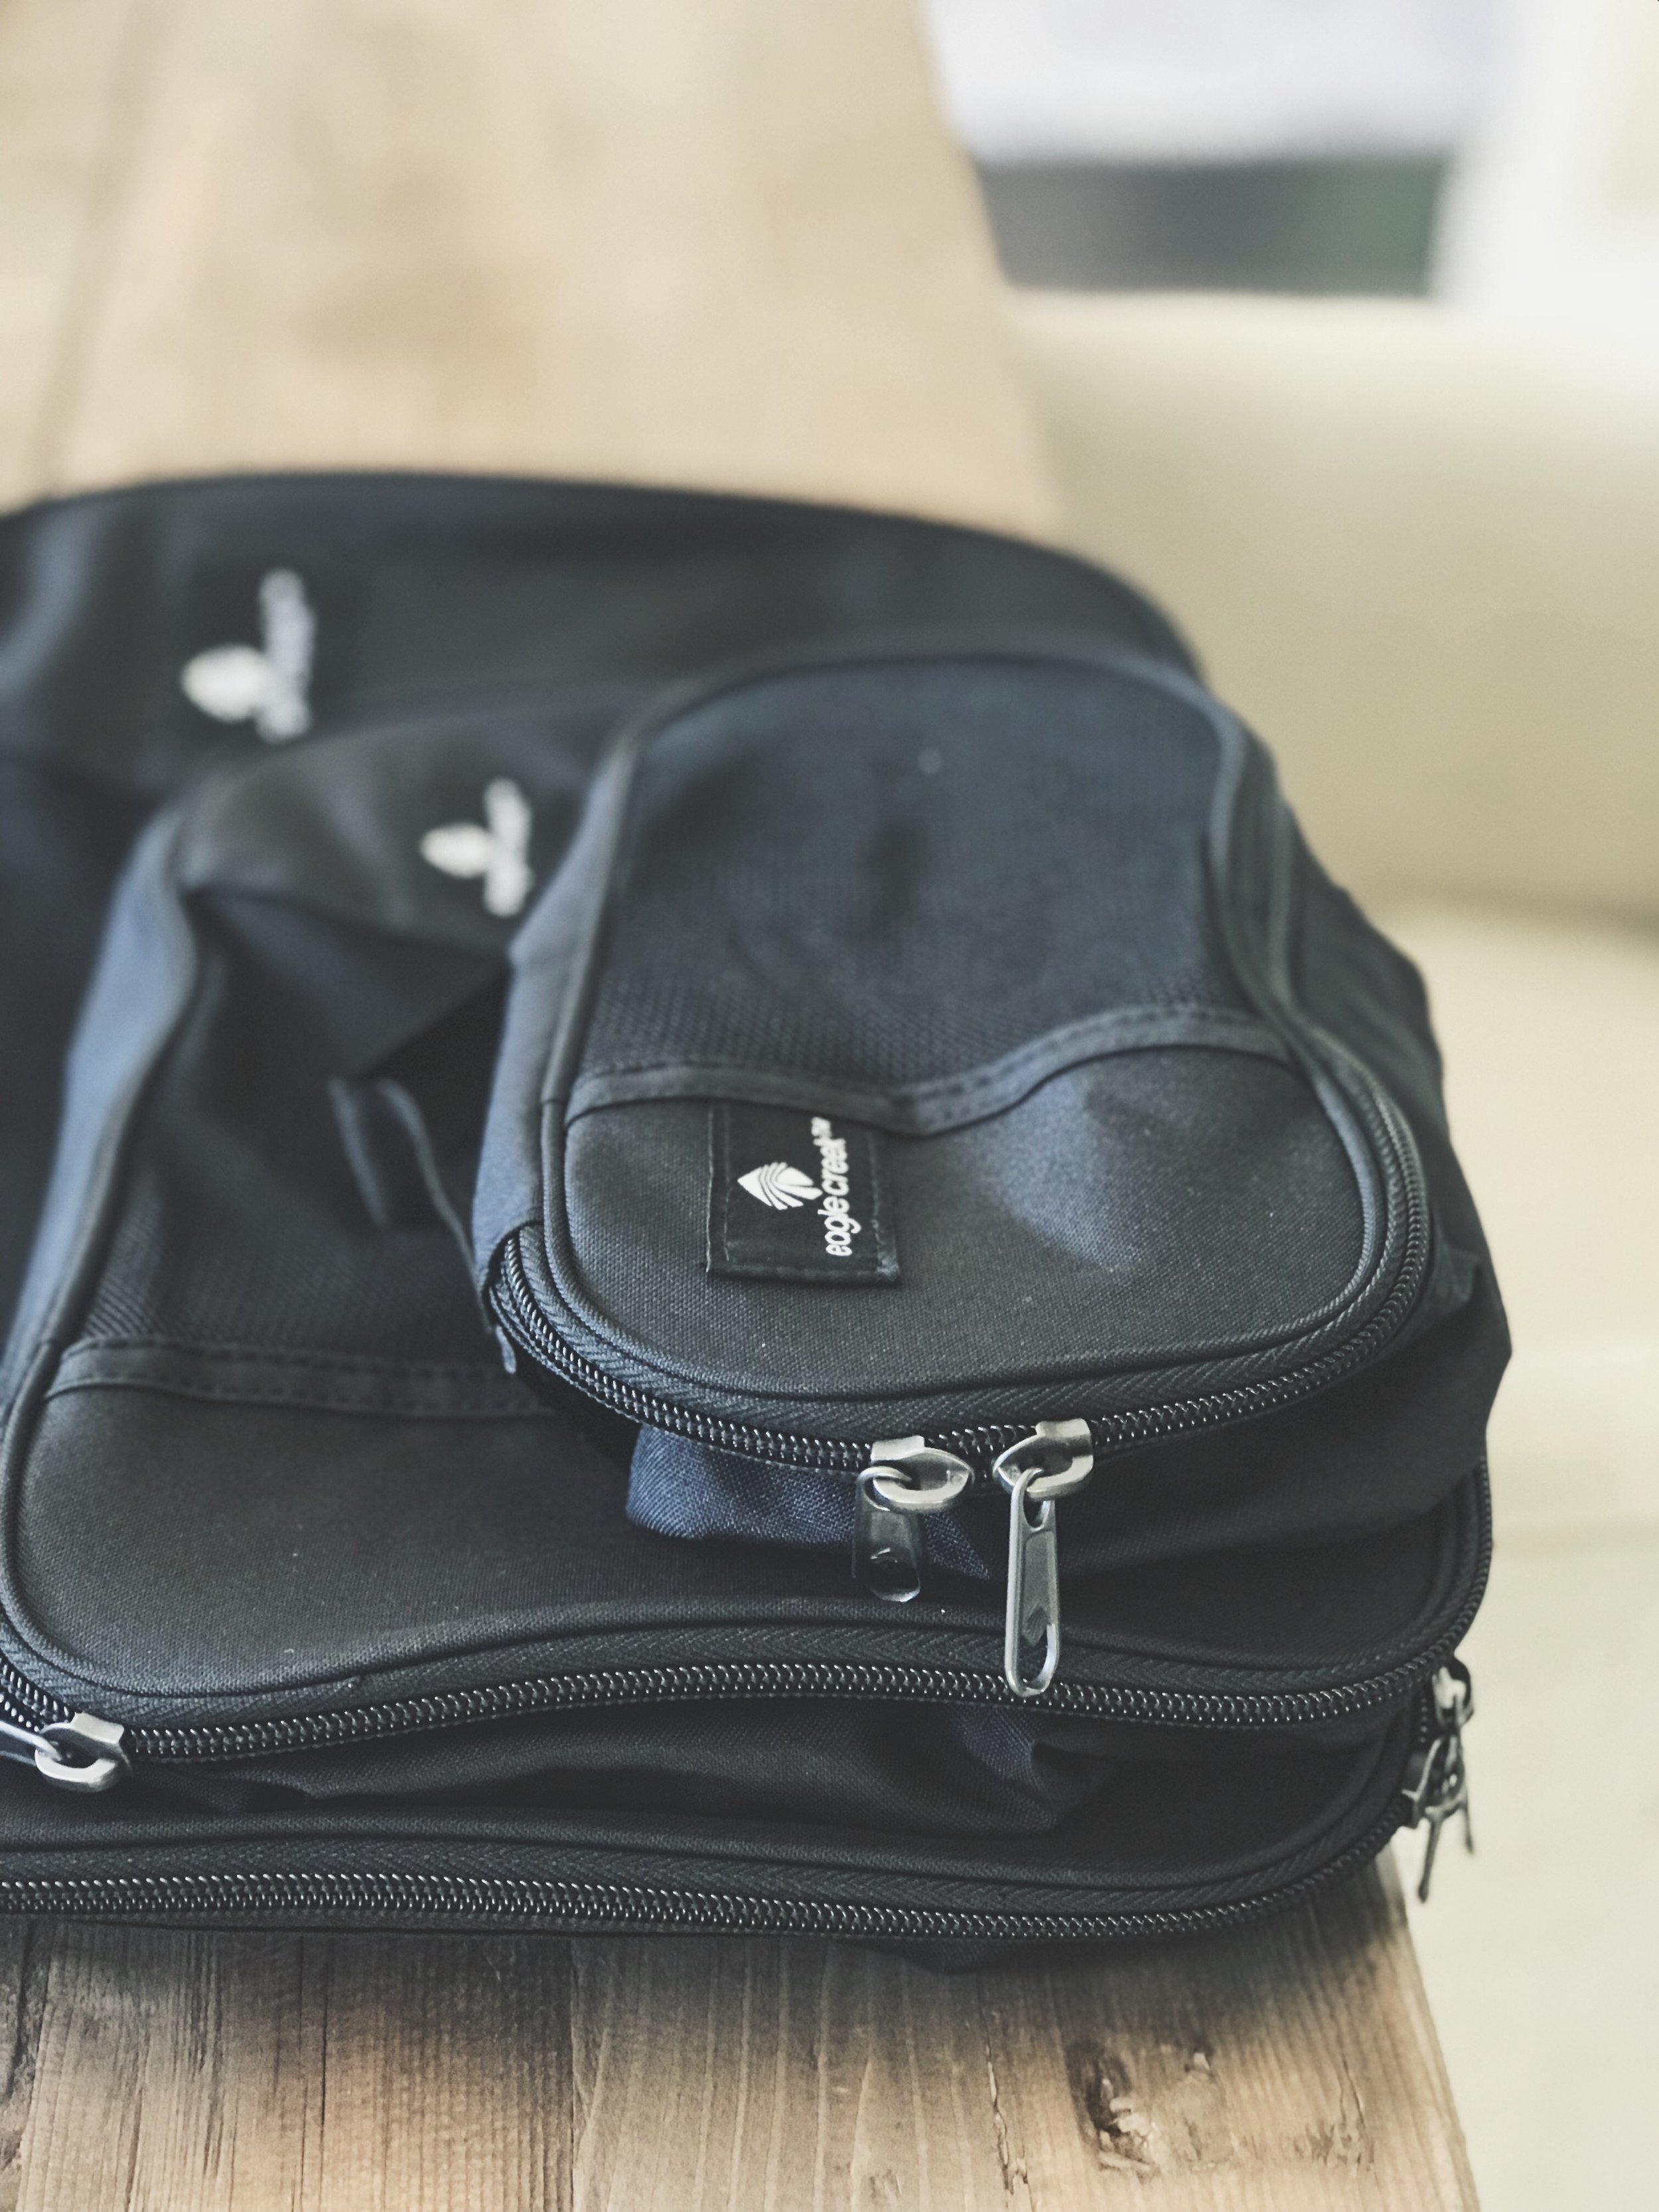 PACKING GUIDE PHOTO 4.JPG